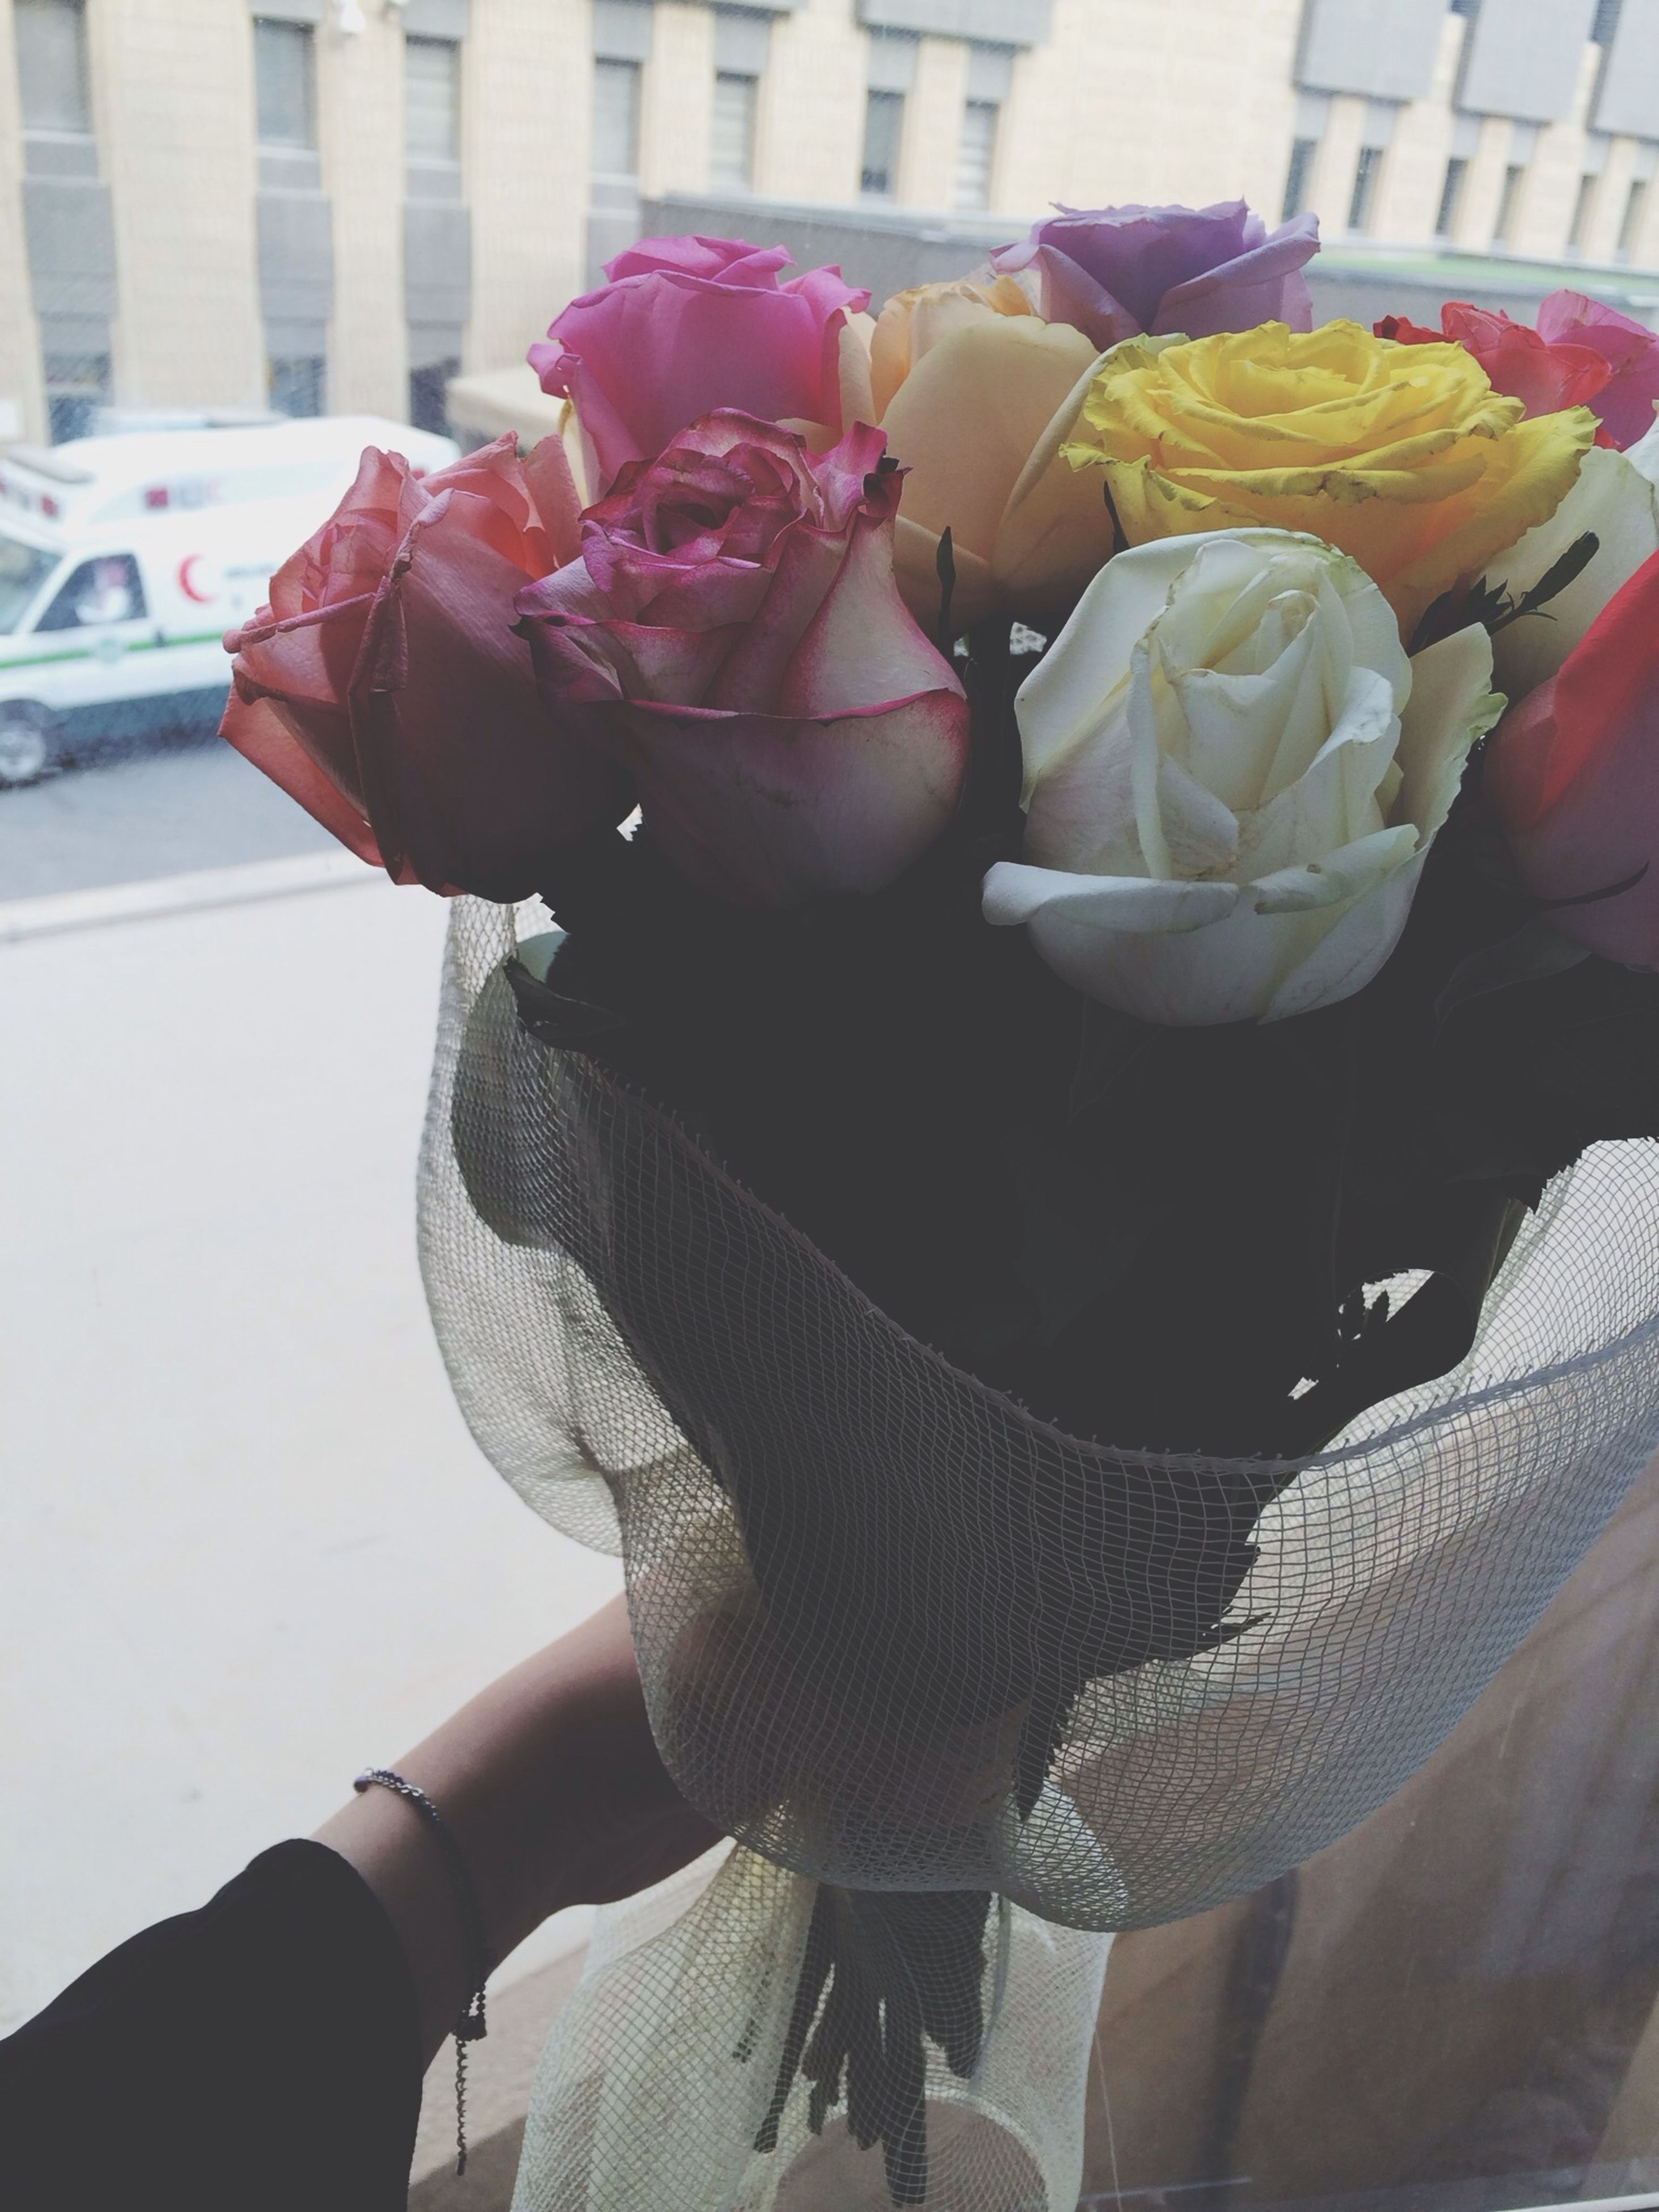 flower, freshness, holding, lifestyles, indoors, rose - flower, petal, bouquet, person, vase, leisure activity, high angle view, casual clothing, fragility, close-up, day, flower head, sitting